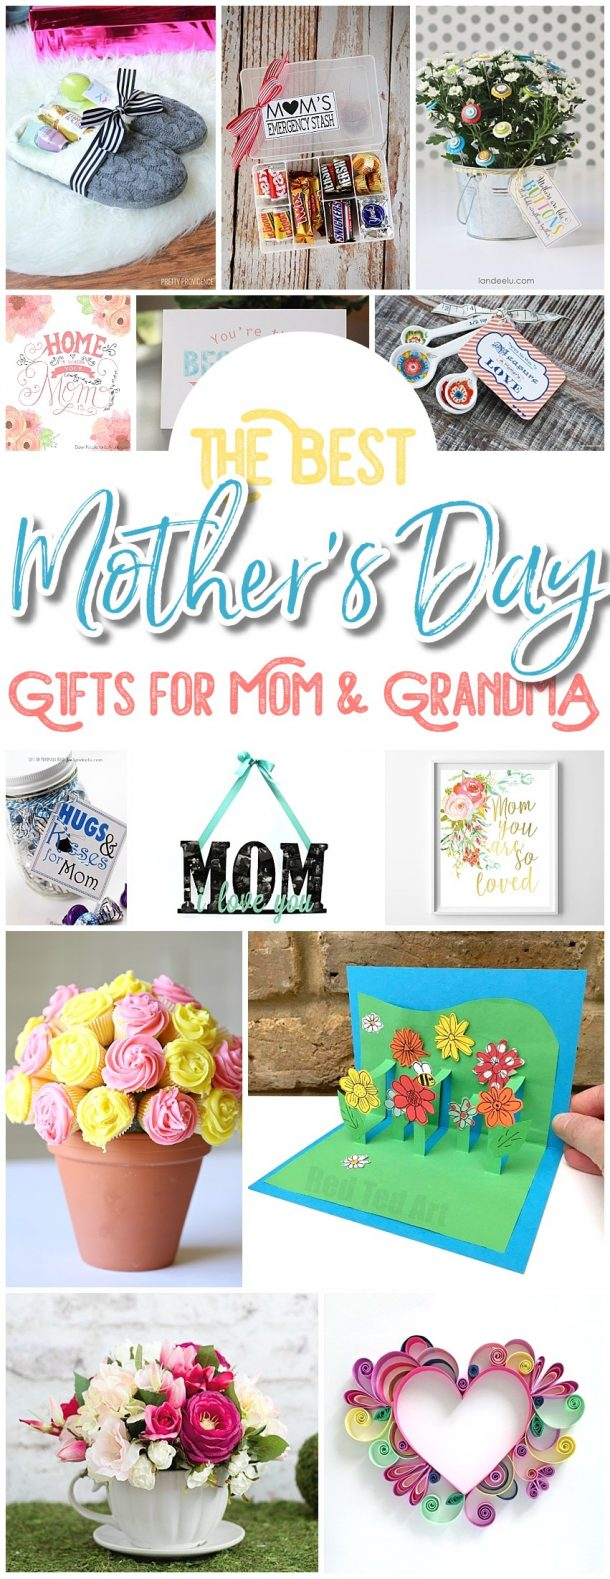 The Best Easy Diy Mother S Day Gifts And Treats Ideas Holiday Craft Activity Projects Free Printables And Favorite Brunch Desserts Recipes For Moms And Grandmas Dreaming In Diy